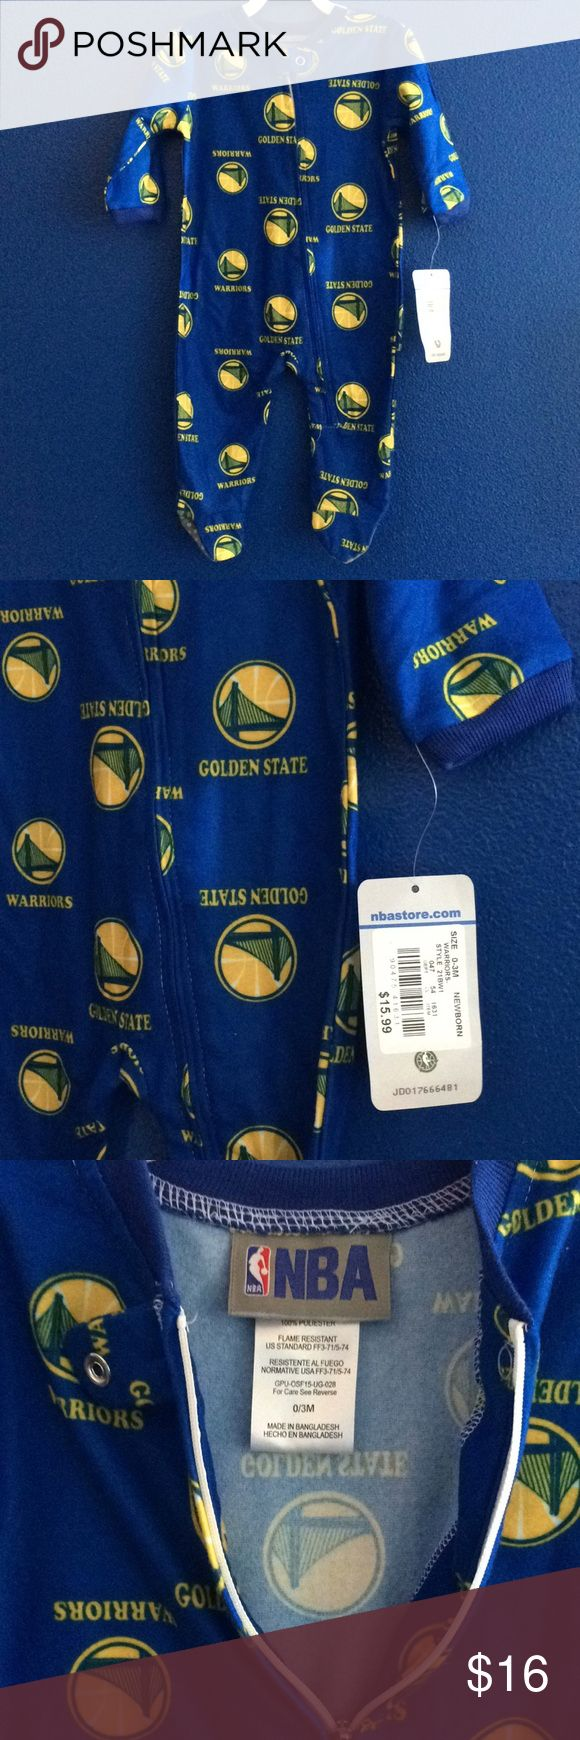 NWT SF golden state warriors NBA footed pajama Brand New with tags. NBA brand. San Francisco golden state warriors team fan onesie. Footed pajama for baby. Boy or girl. Gender neutral. Zip up. Super cute thin flannel material. Warm and cute for the bay weather. Size newborn 0-3 months. Bundle with other items in my closet and save 20%. NBA One Pieces Footies